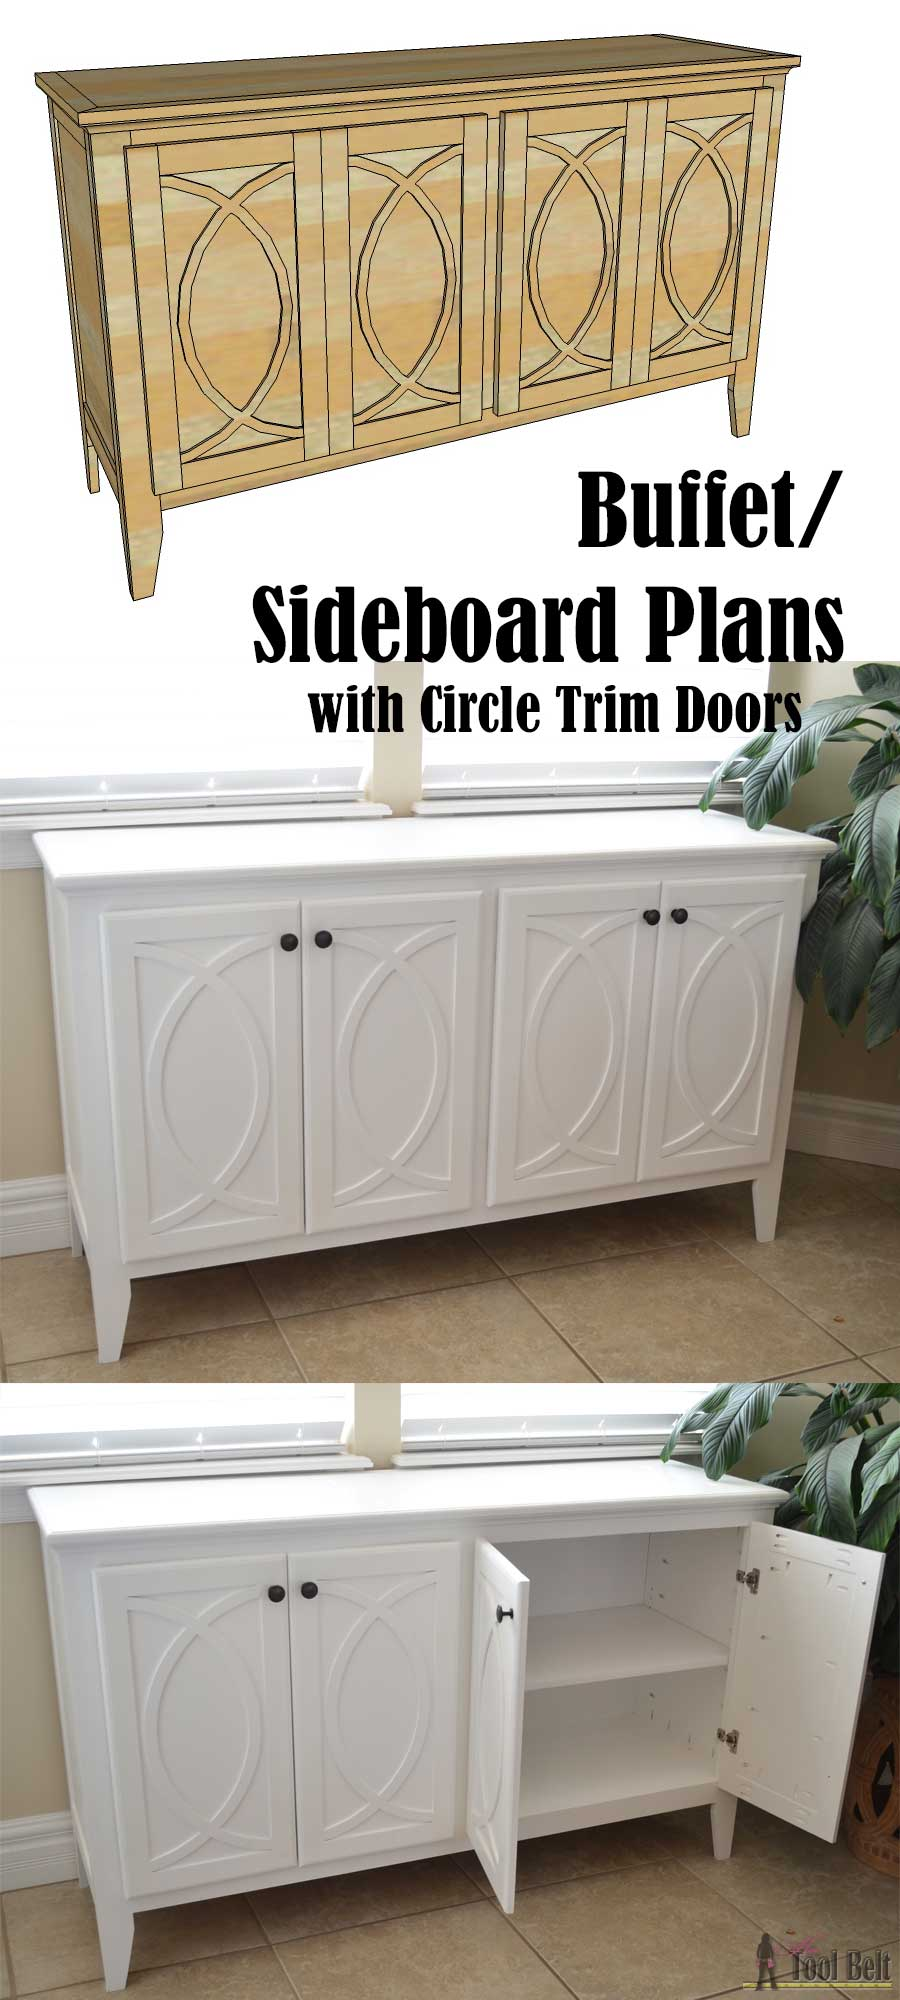 diy buffet sideboard with circle trim doors her tool belt. Black Bedroom Furniture Sets. Home Design Ideas